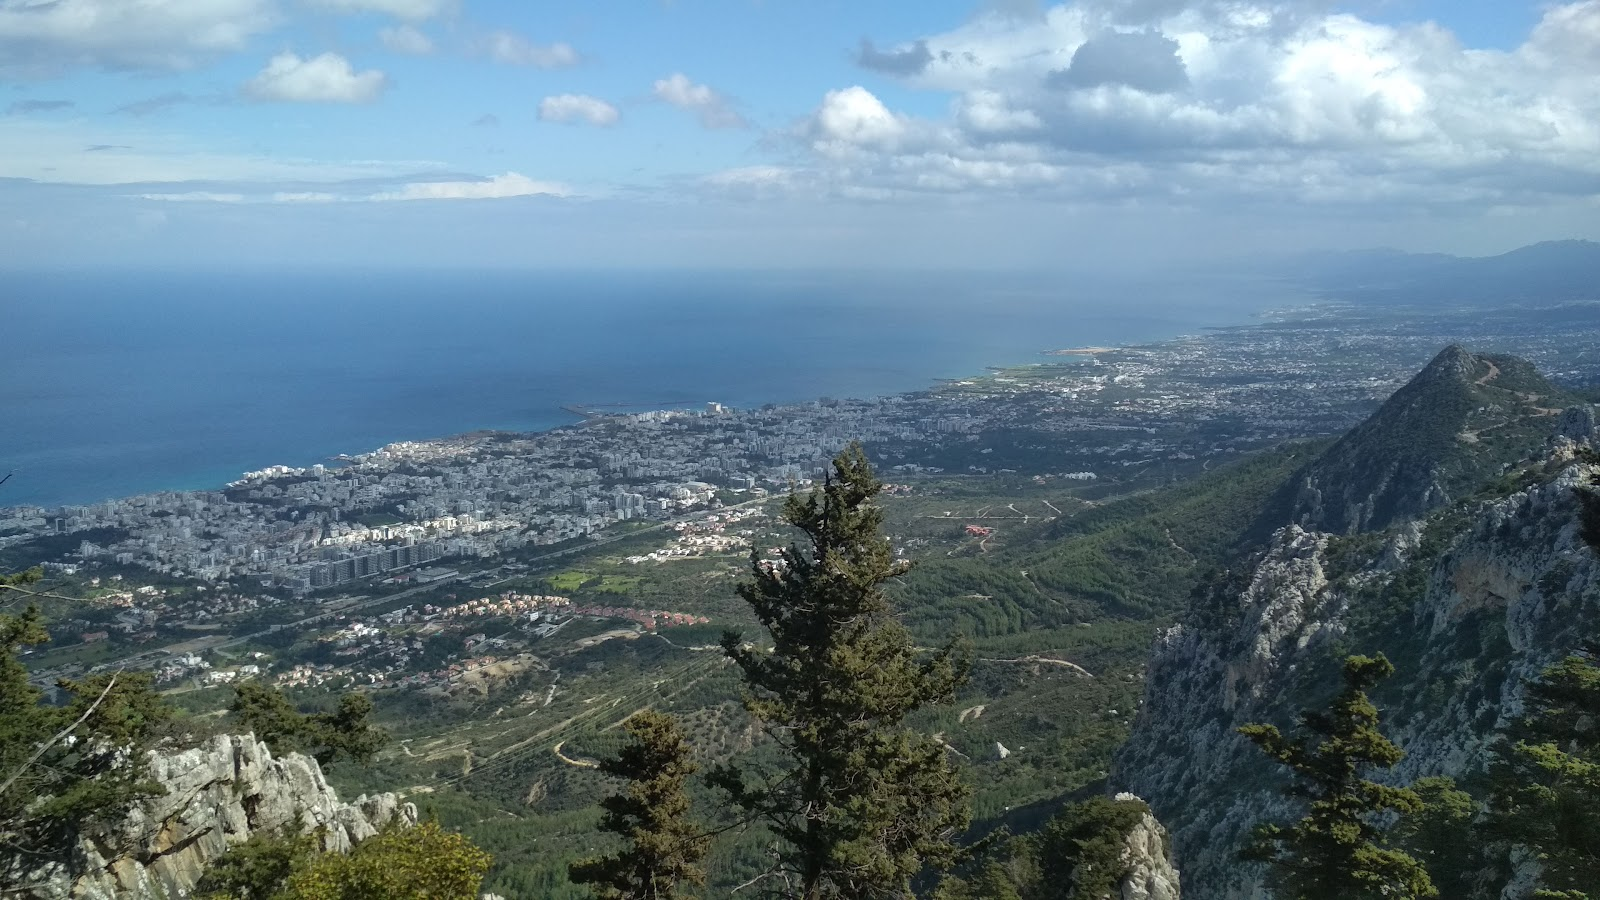 A picture from one of the high points on the island of Cyprus in Girne.